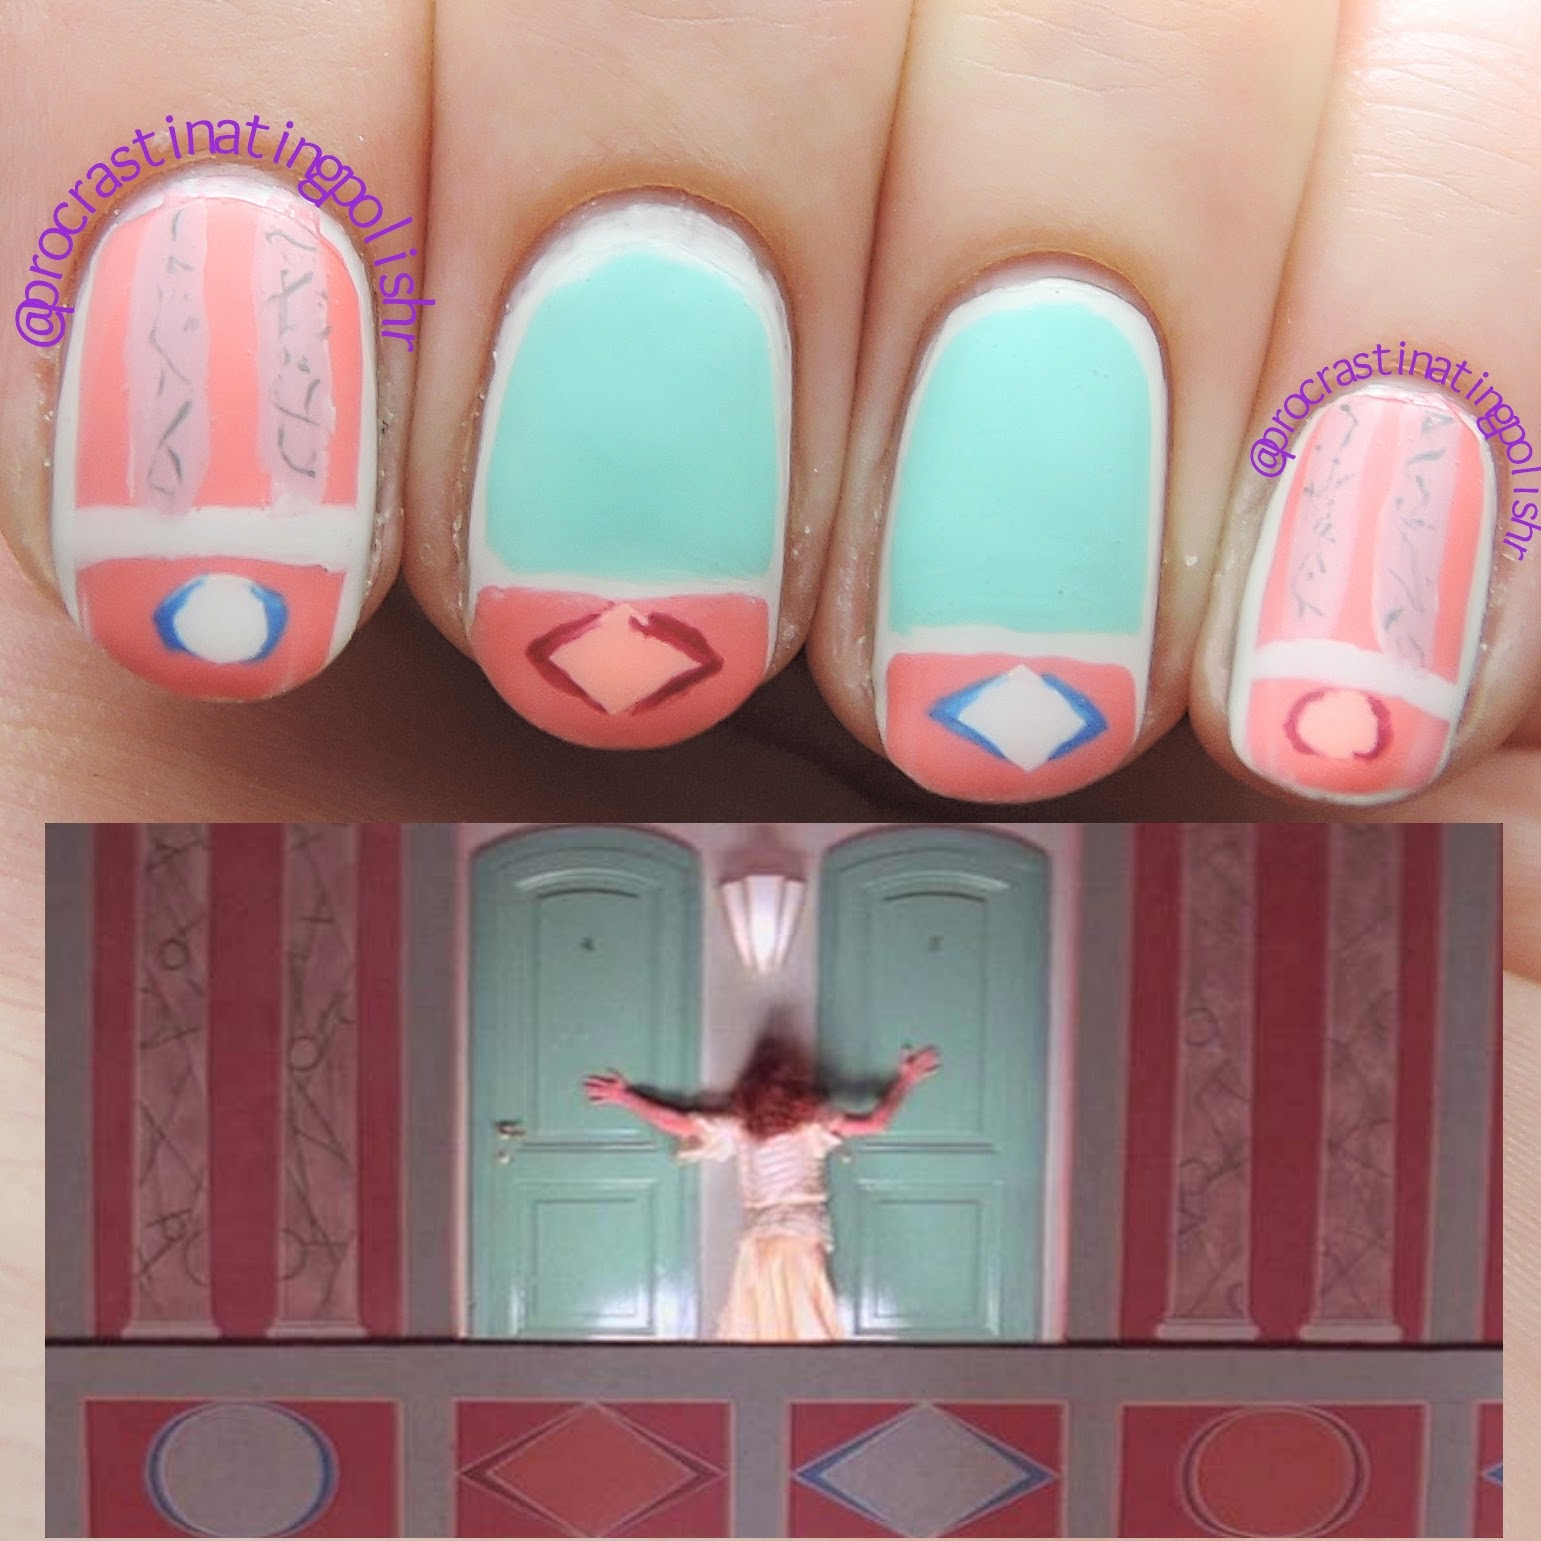 Suspiria Nail Art 31 Day Challenge 2014 Inspired by a Movie